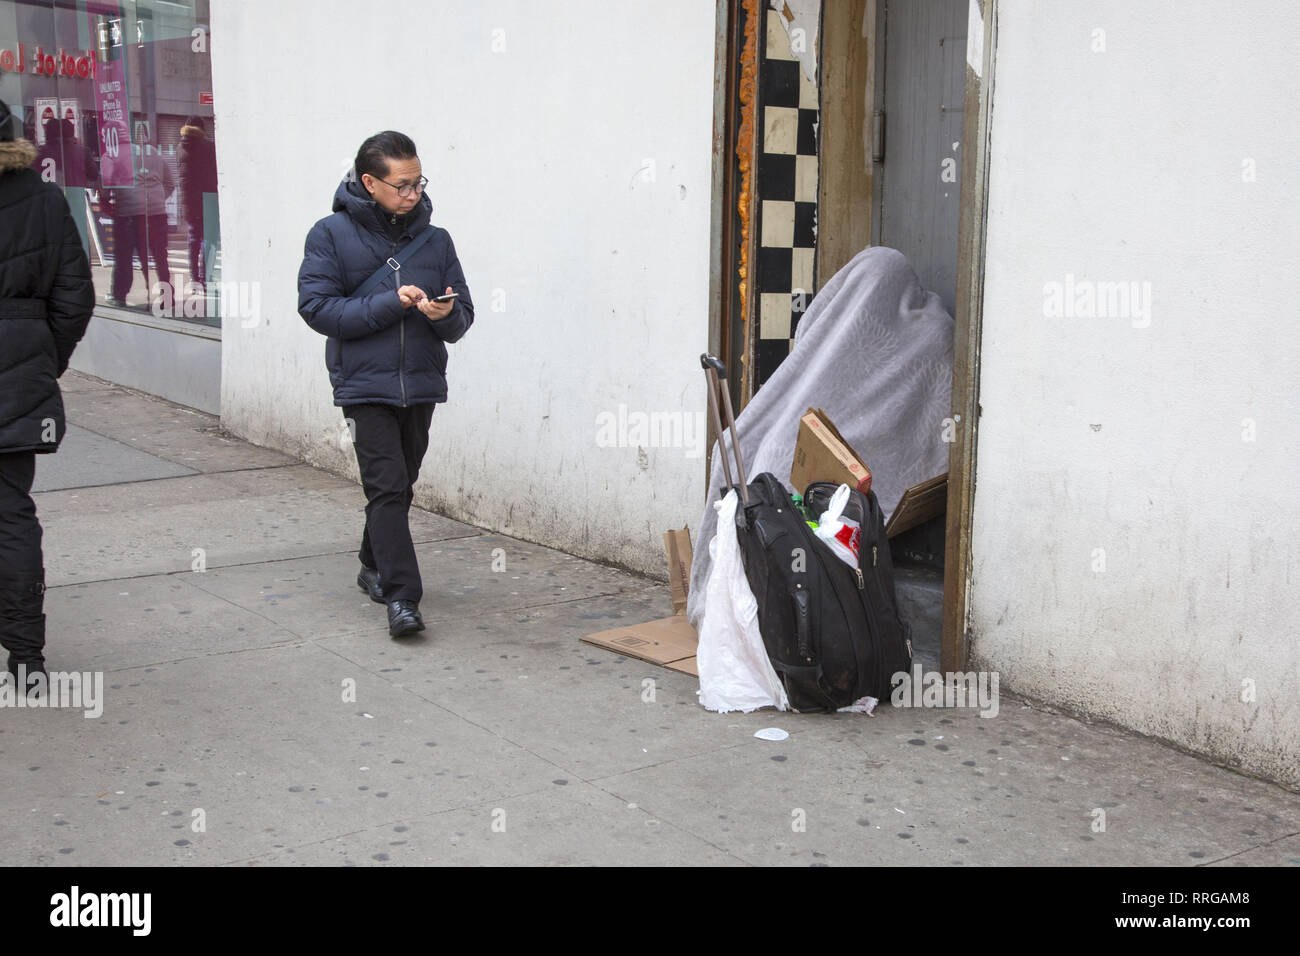 Anonymous homeless person in a doorway, downtown Brooklyn, New York. - Stock Image